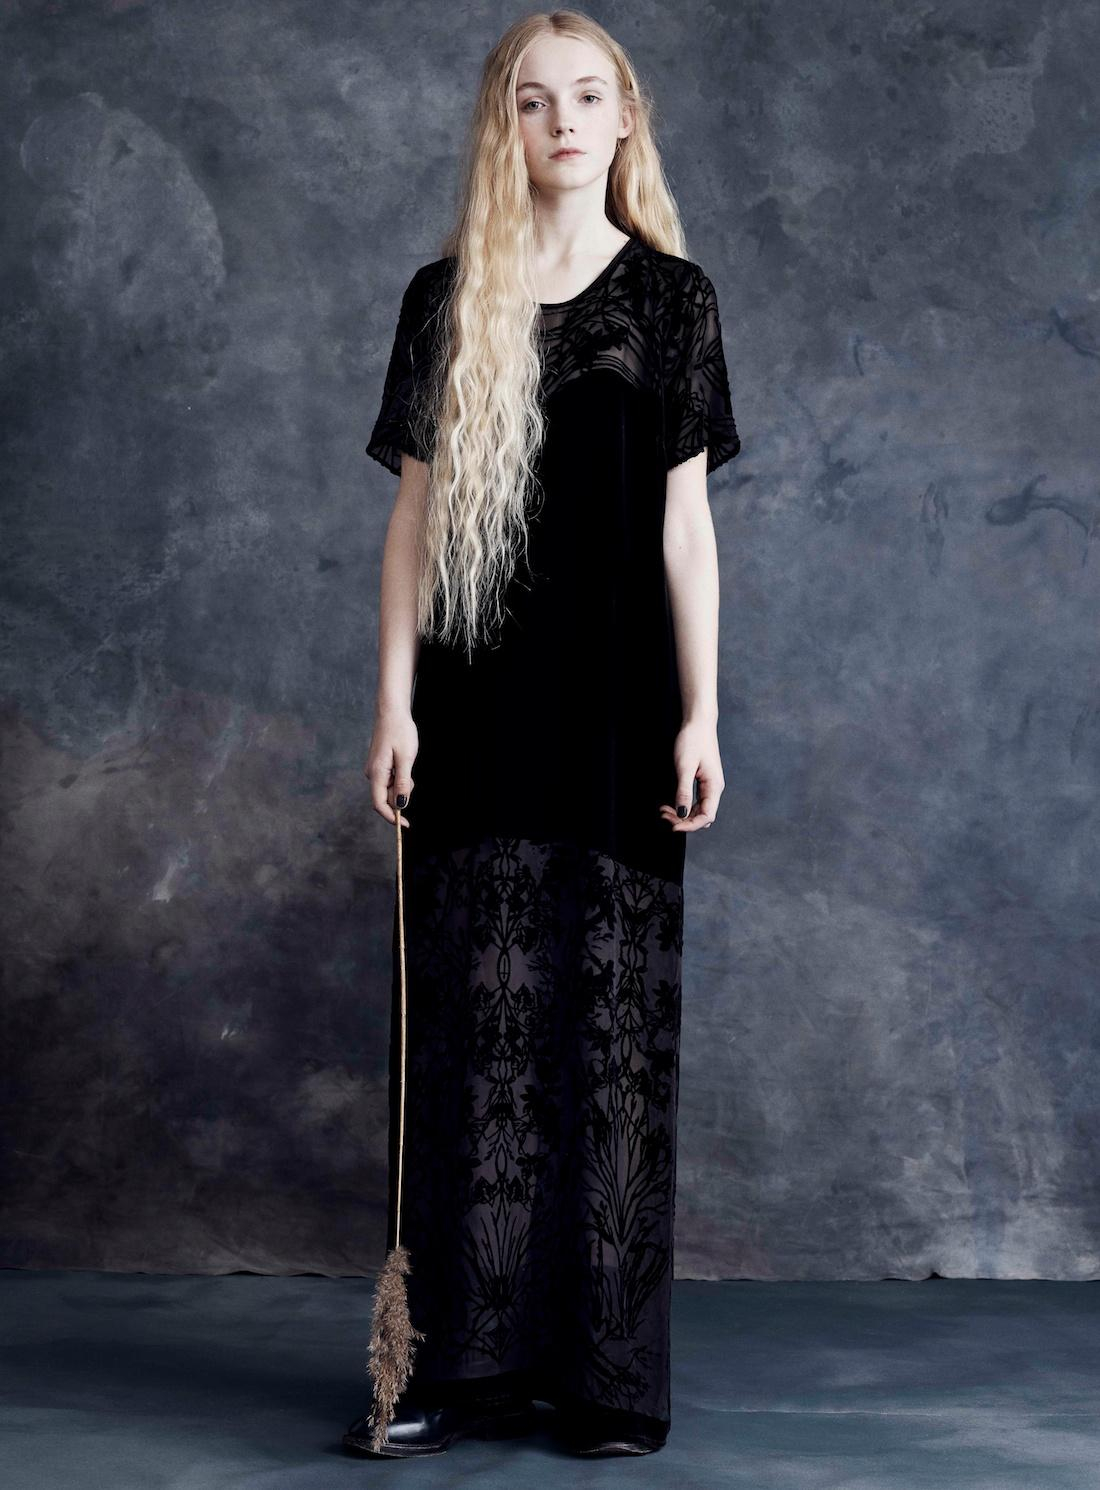 Draw in light Long Black Velvet Dress With Diaphanous Branches By ...